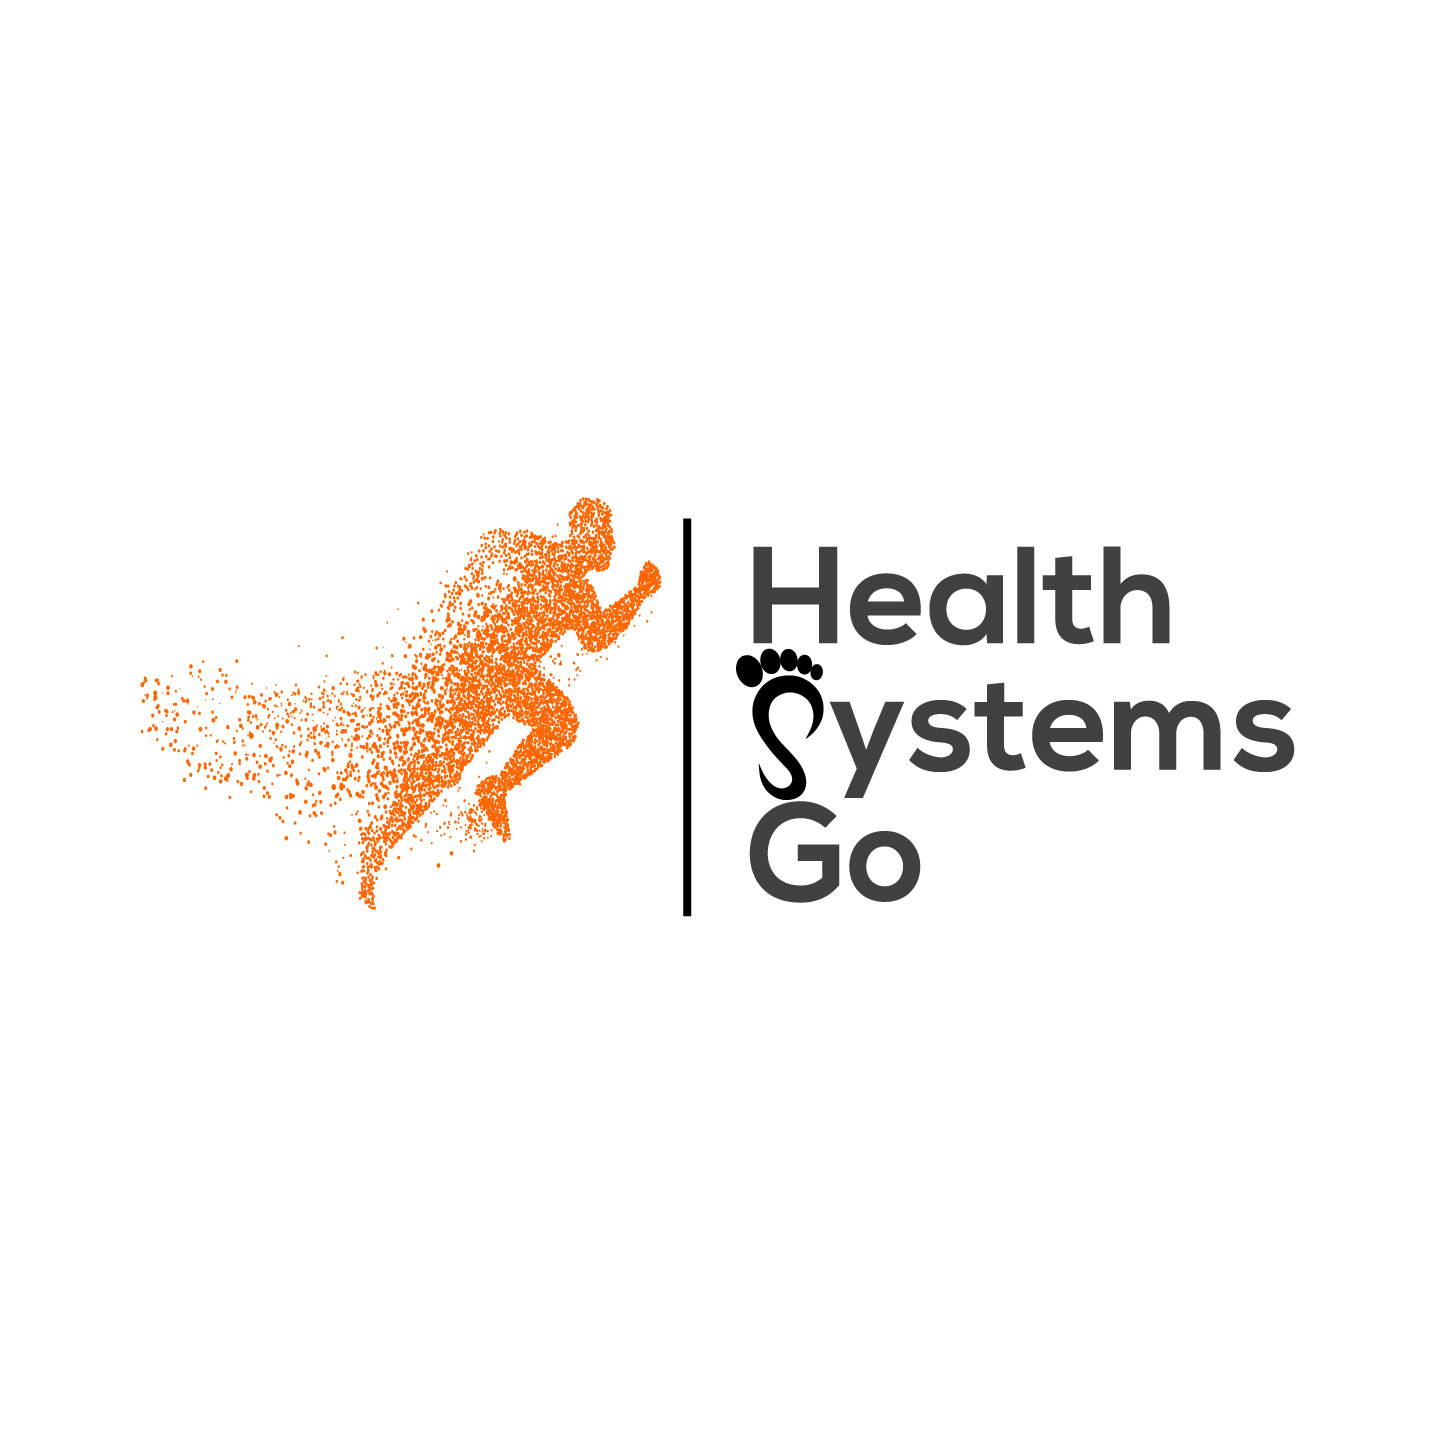 Health Systems Go